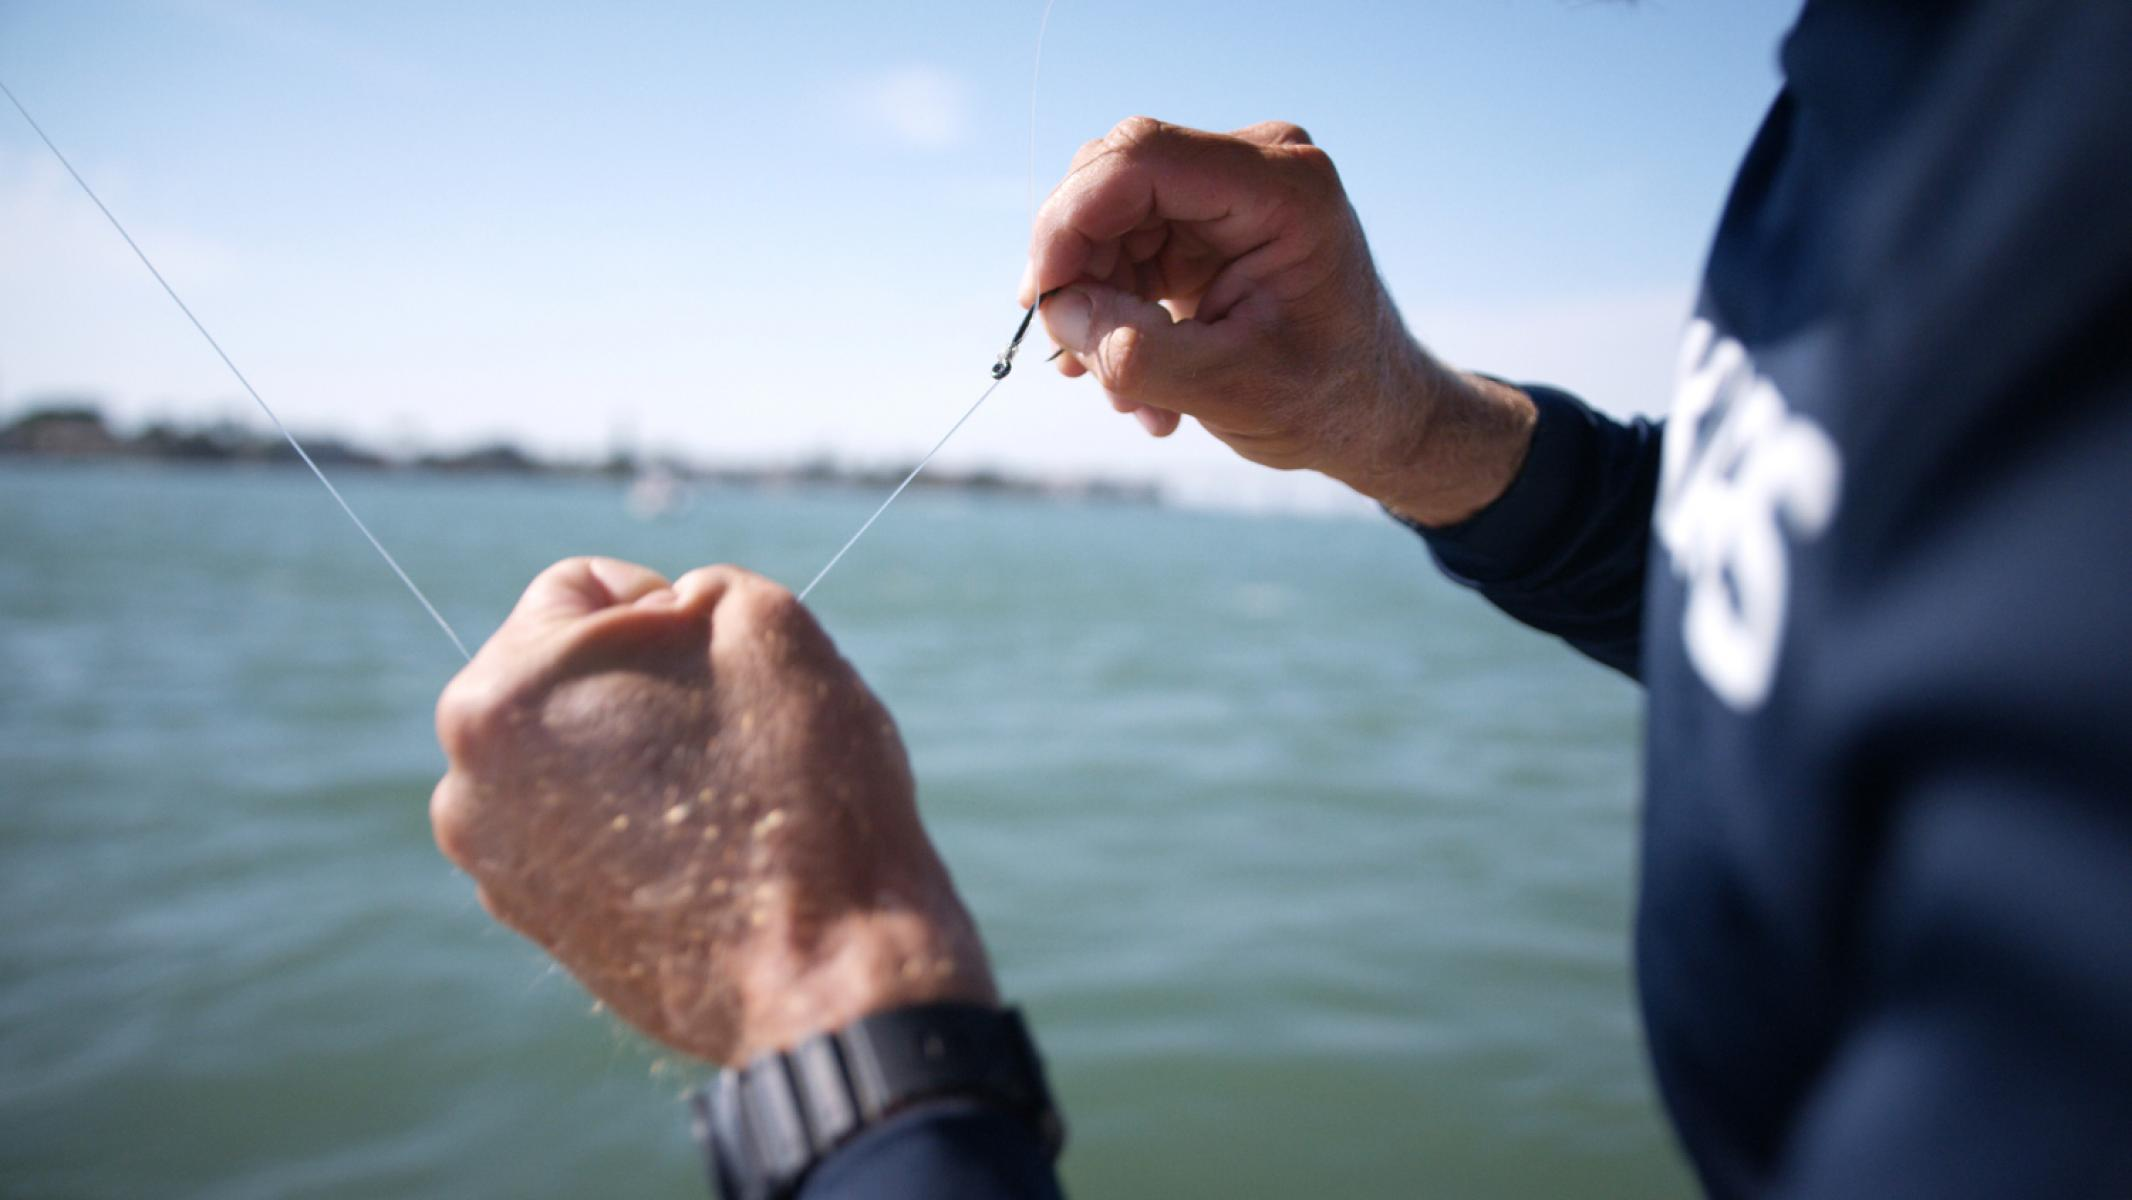 Intro to Fishing: How to Bait, Cast, Reel and Land a Fish!